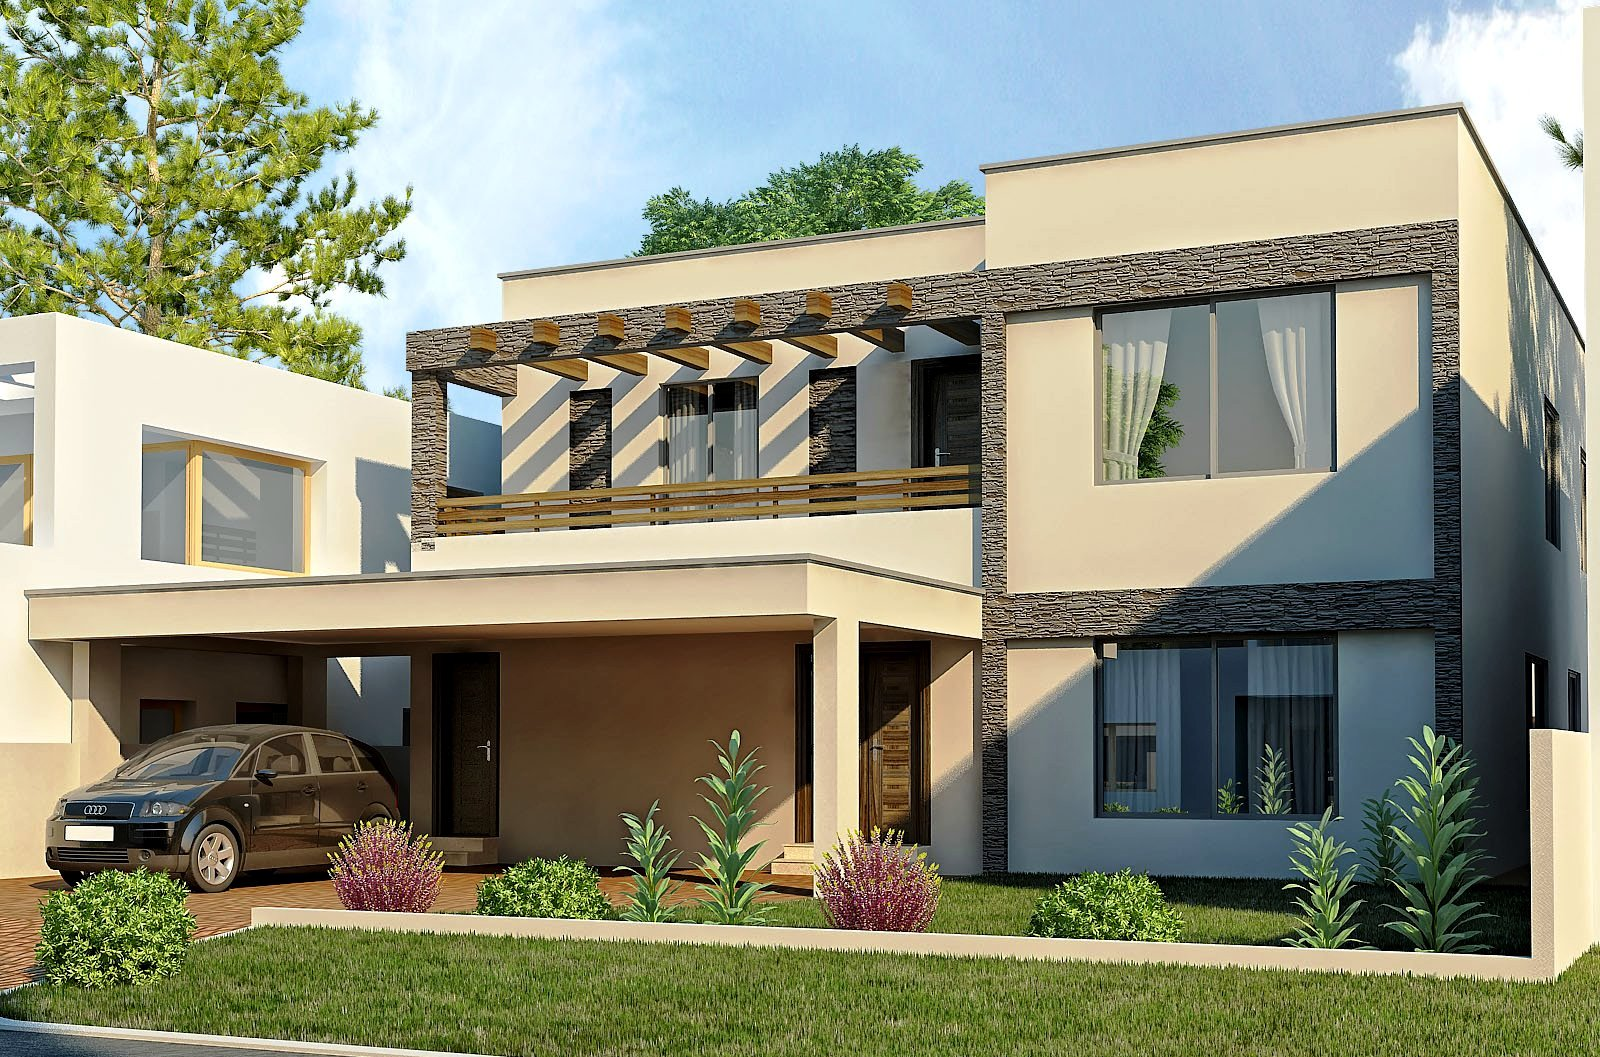 New home designs latest modern homes exterior designs views for Design house exterior online